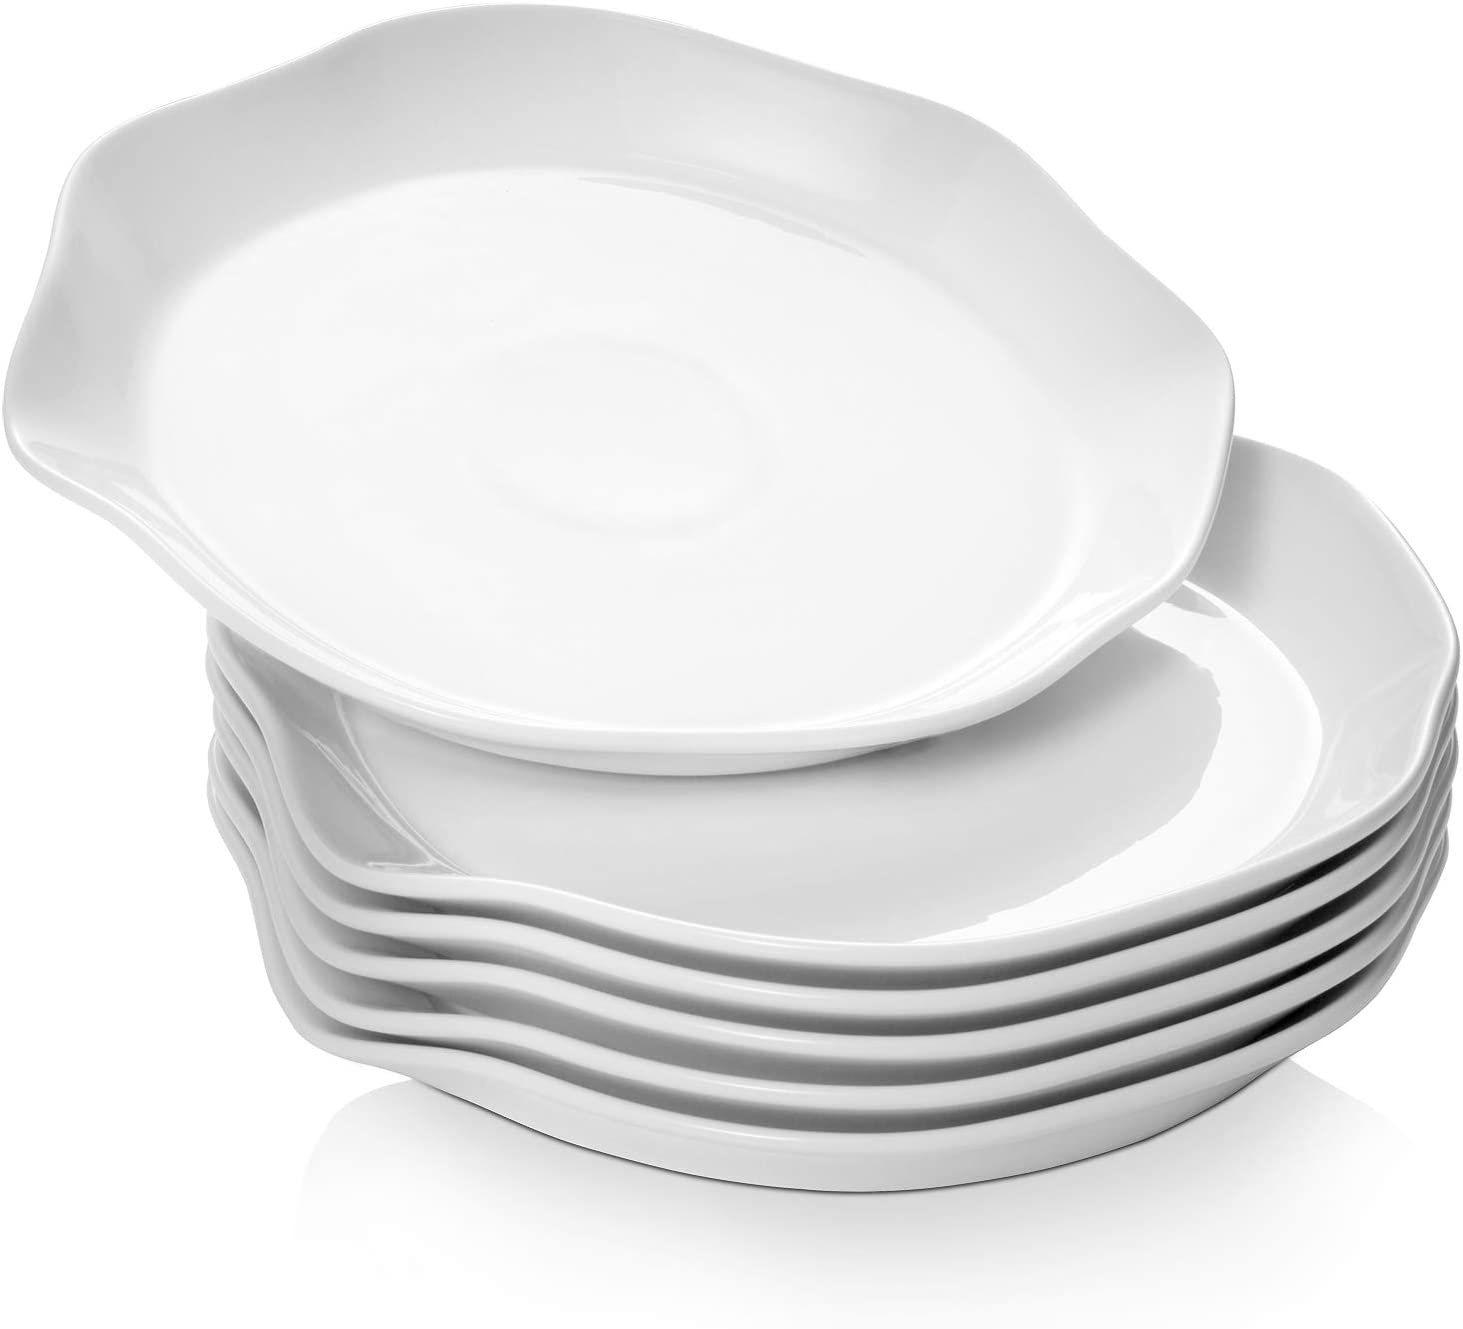 "DOWAN Dinner Plates Ceramic, 10"" White Thanksgiving Serving Dishes, Salad Serving Plates Set of 6, Serving Dishes for Pasta, Salad, Sandwiches, Steak"